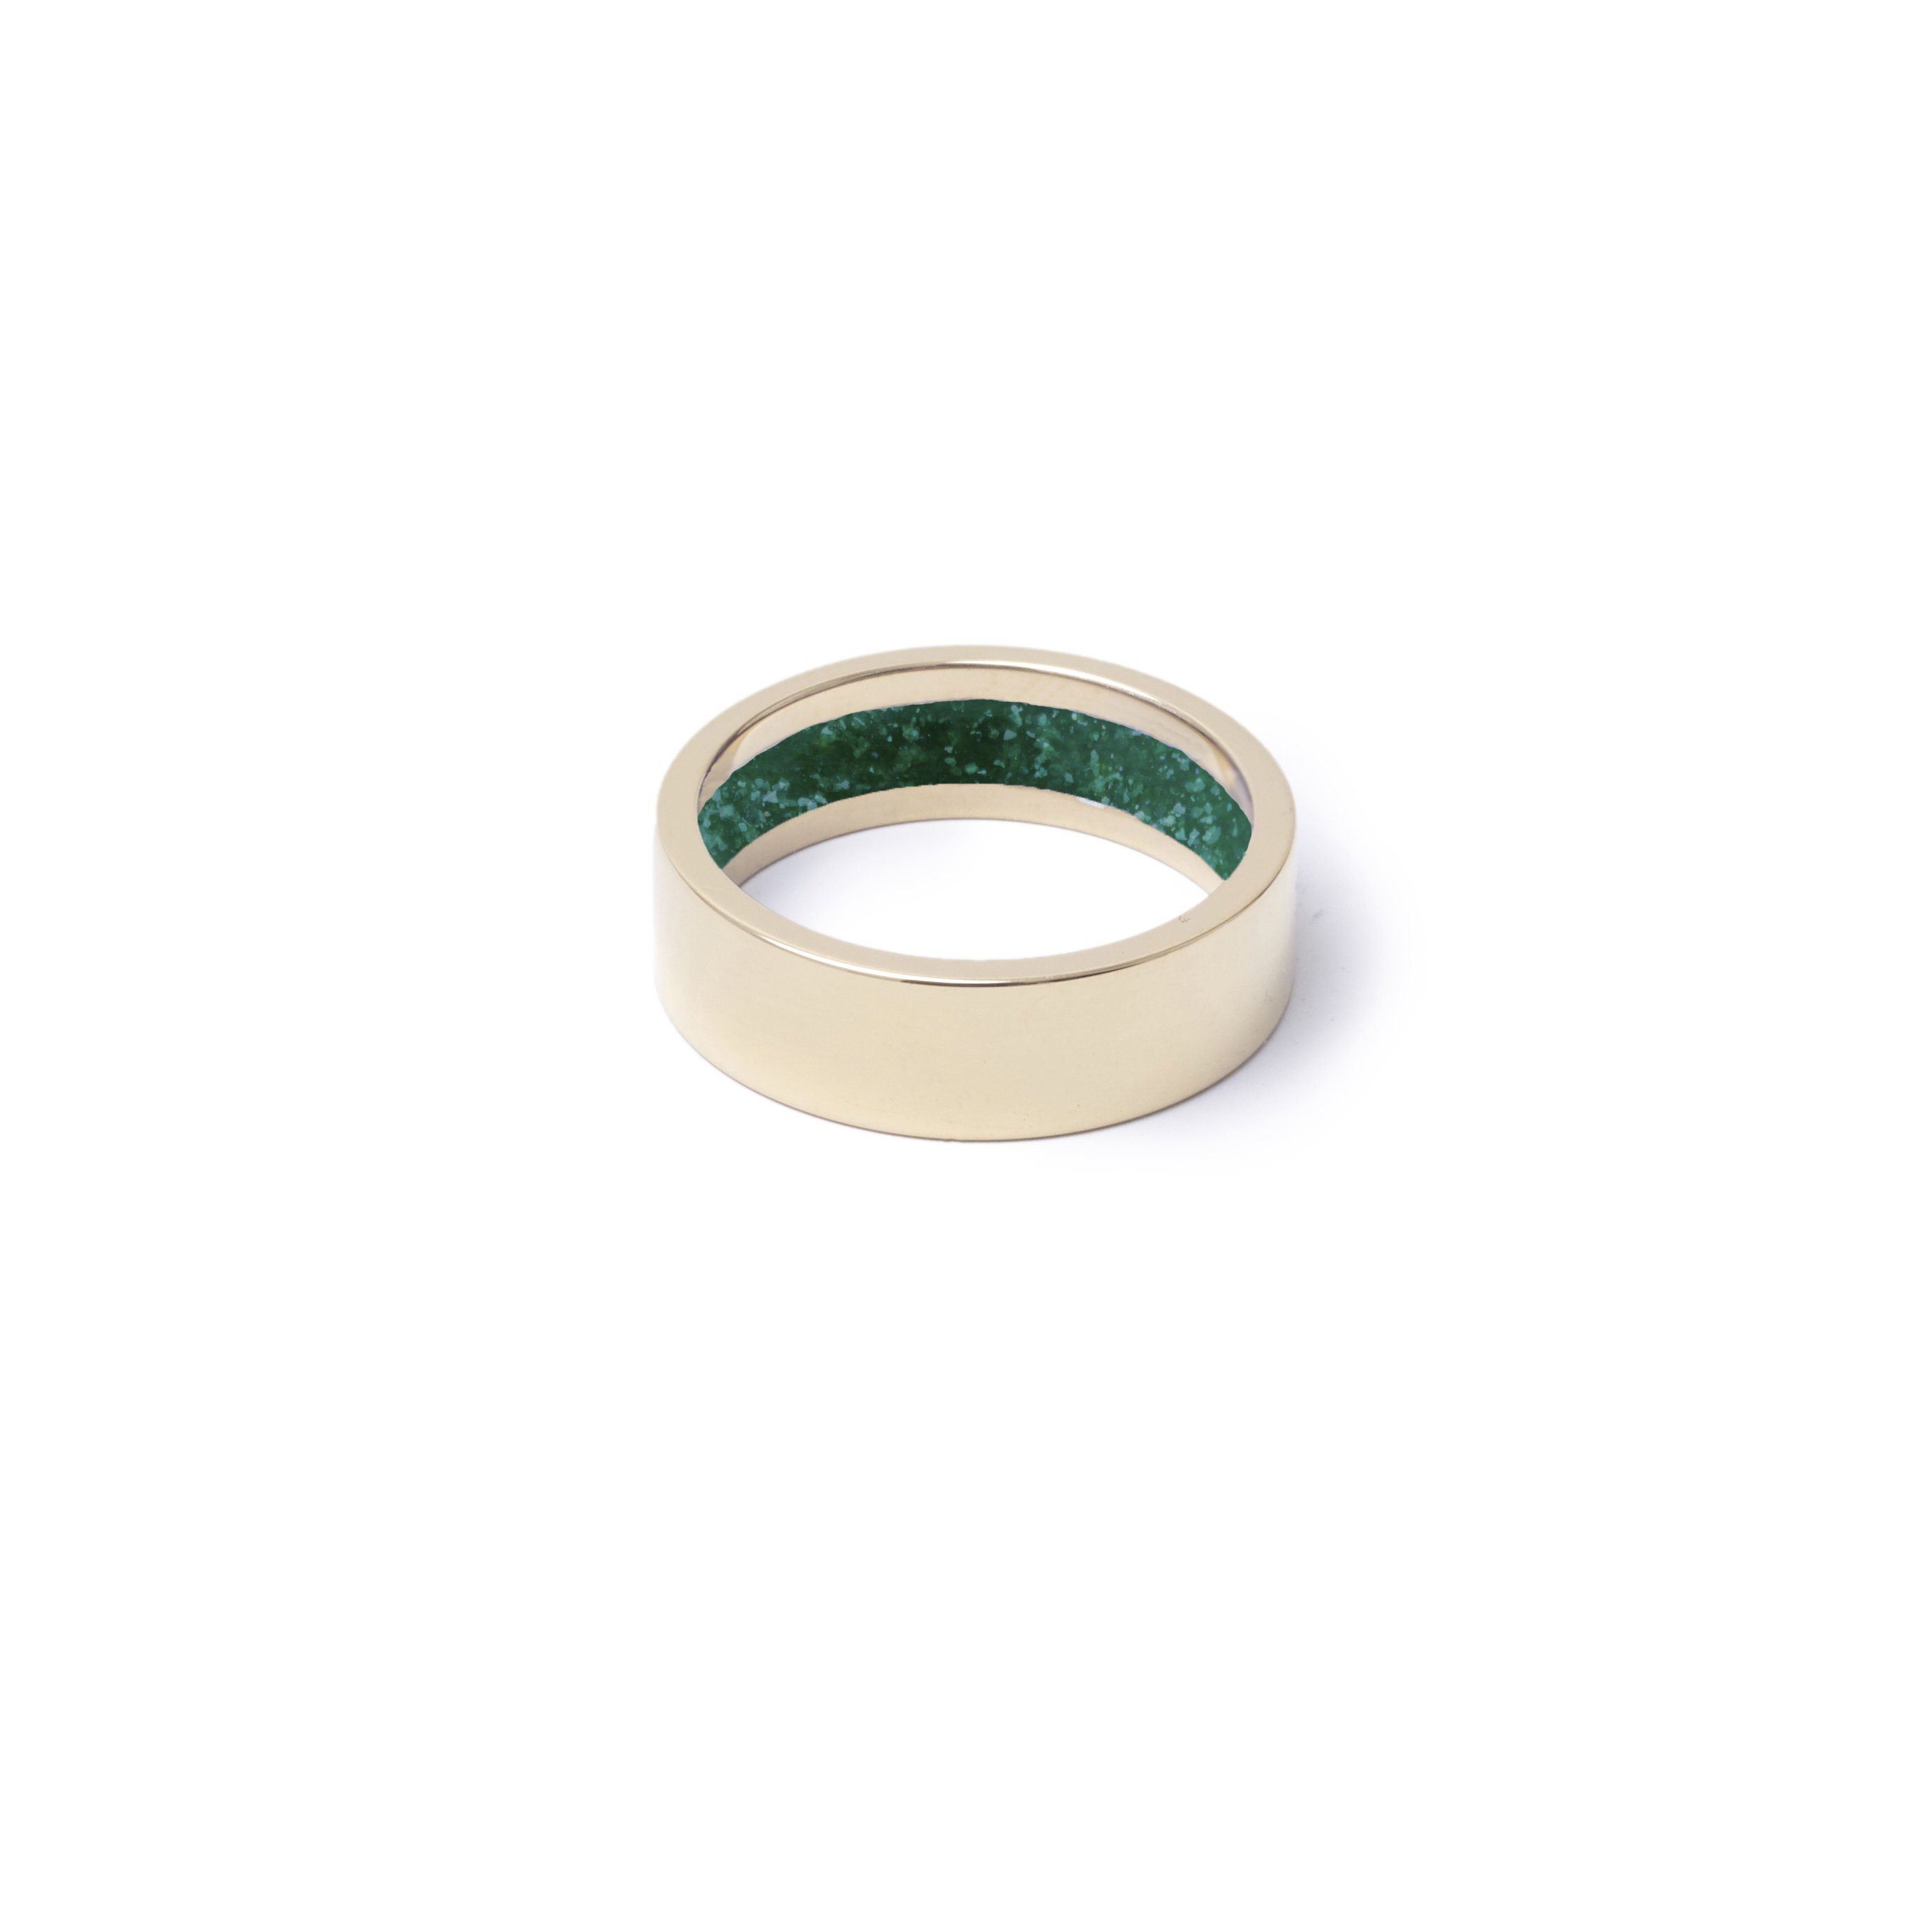 Everence Ring, 10k Yellow Gold everence.life 6mm Emerald